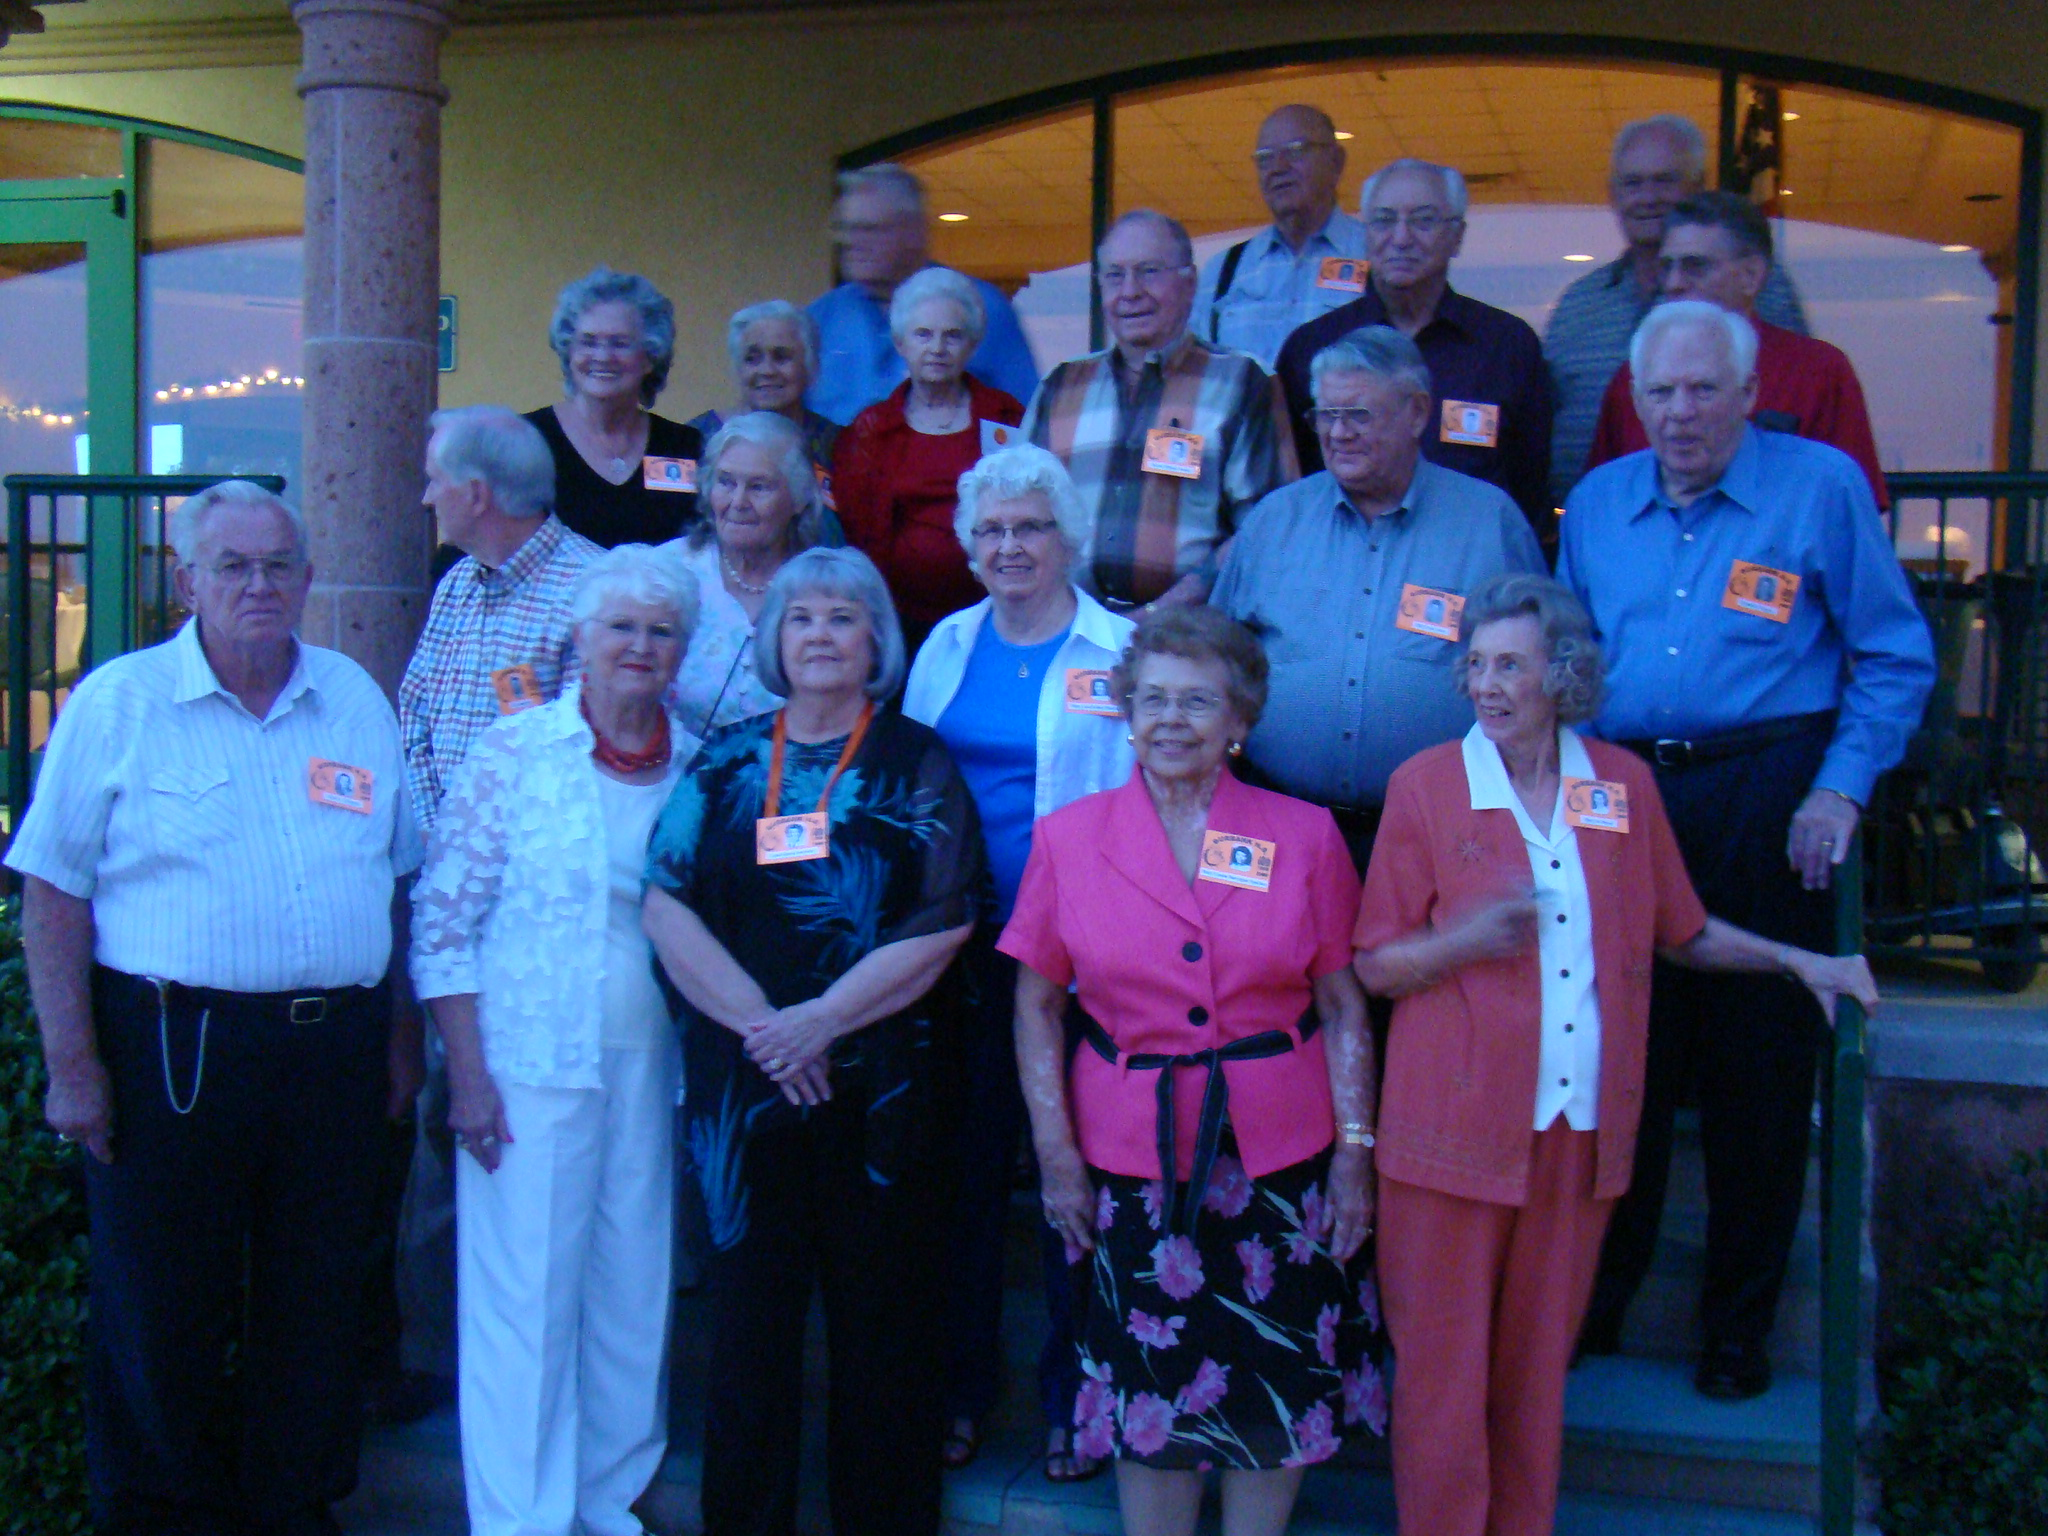 60th Burbank HS Reunion in San Antonio, TX